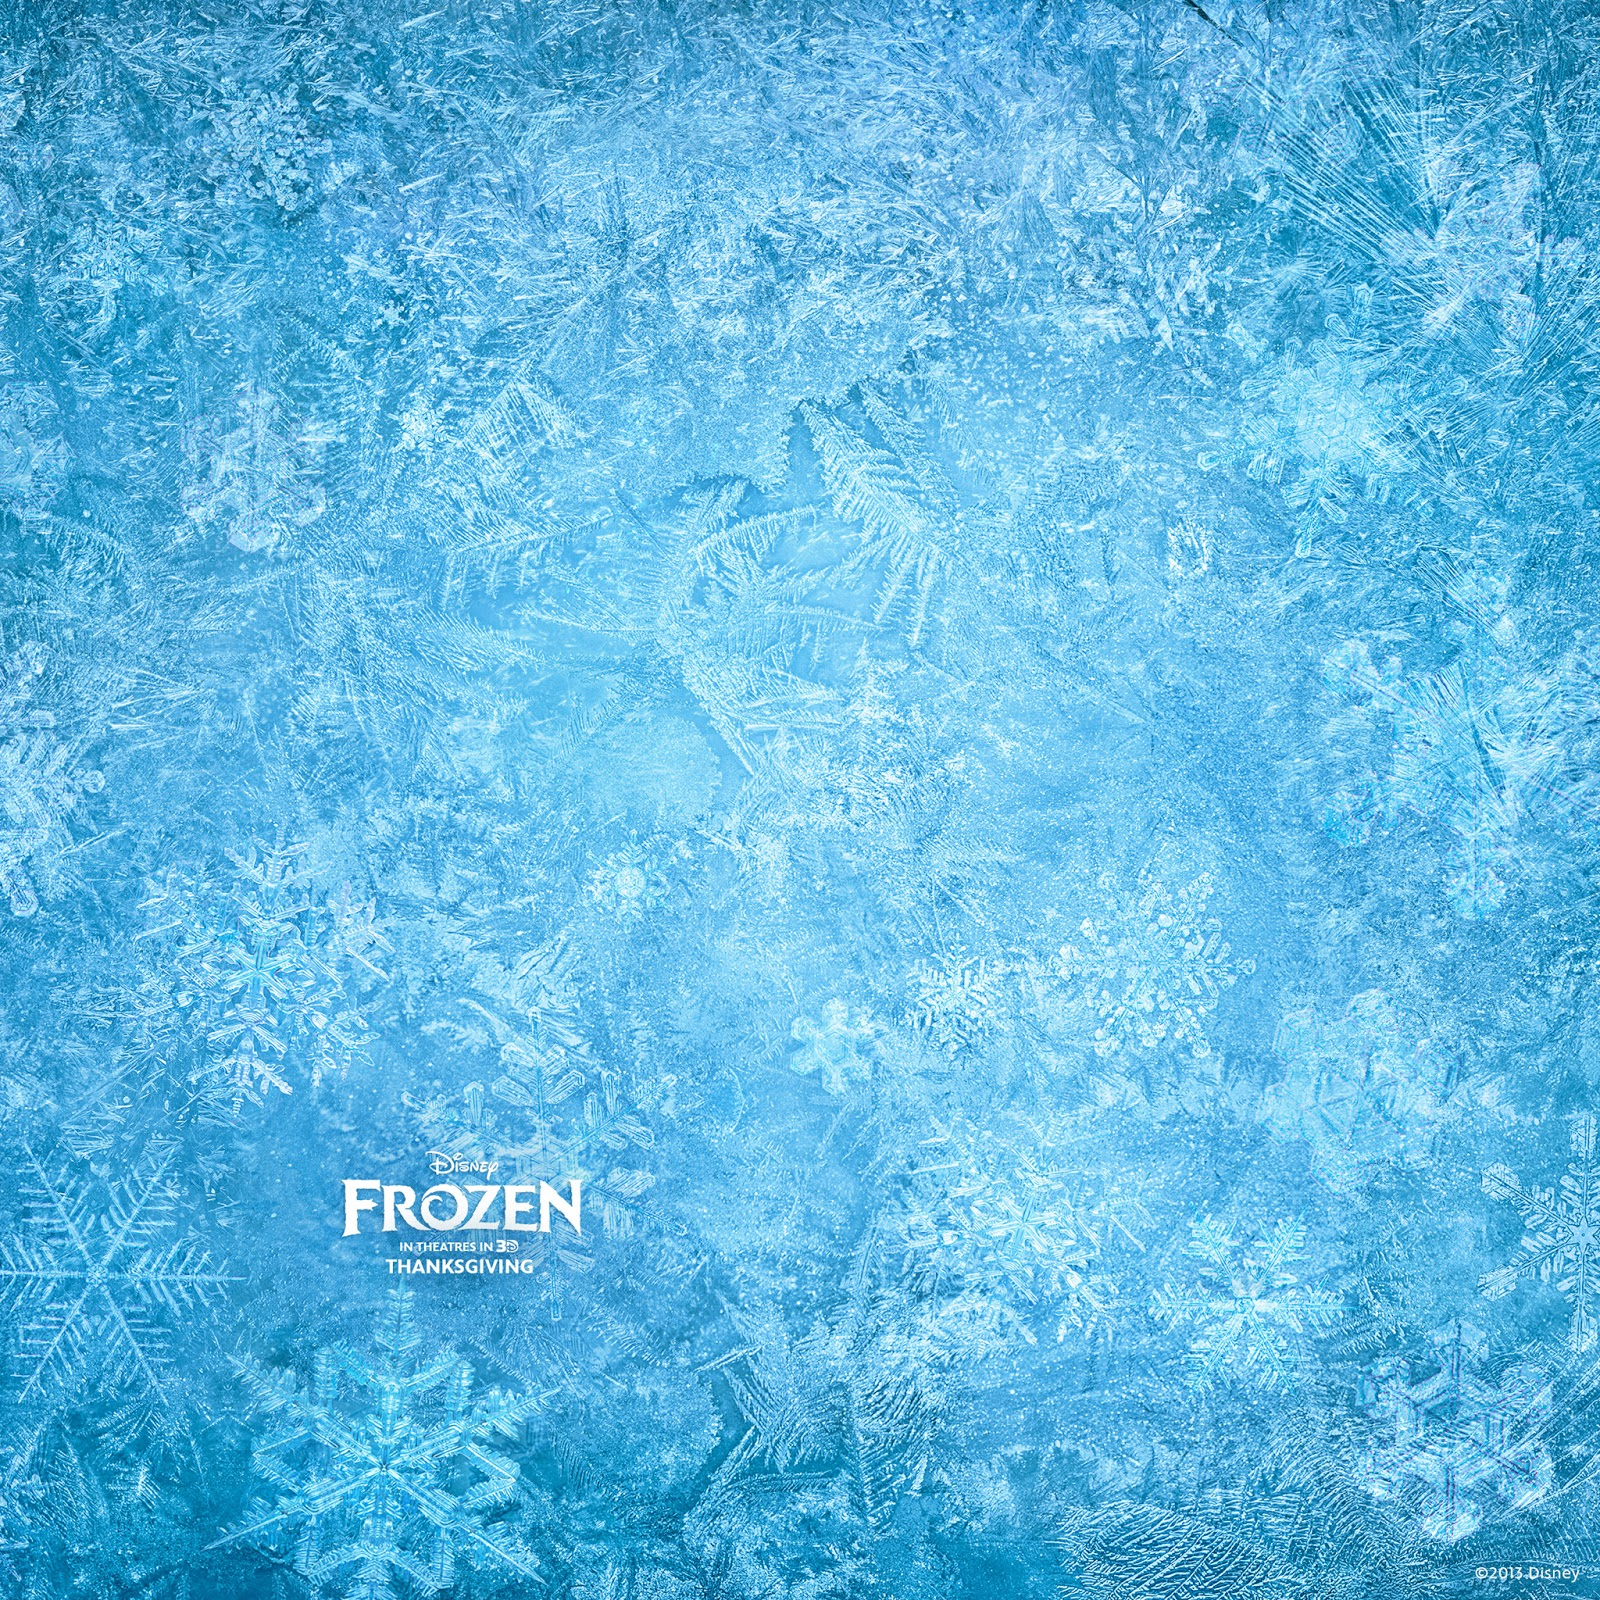 Frozen iPad Wallpaper iPad Retina HD Wallpapers 1600x1600